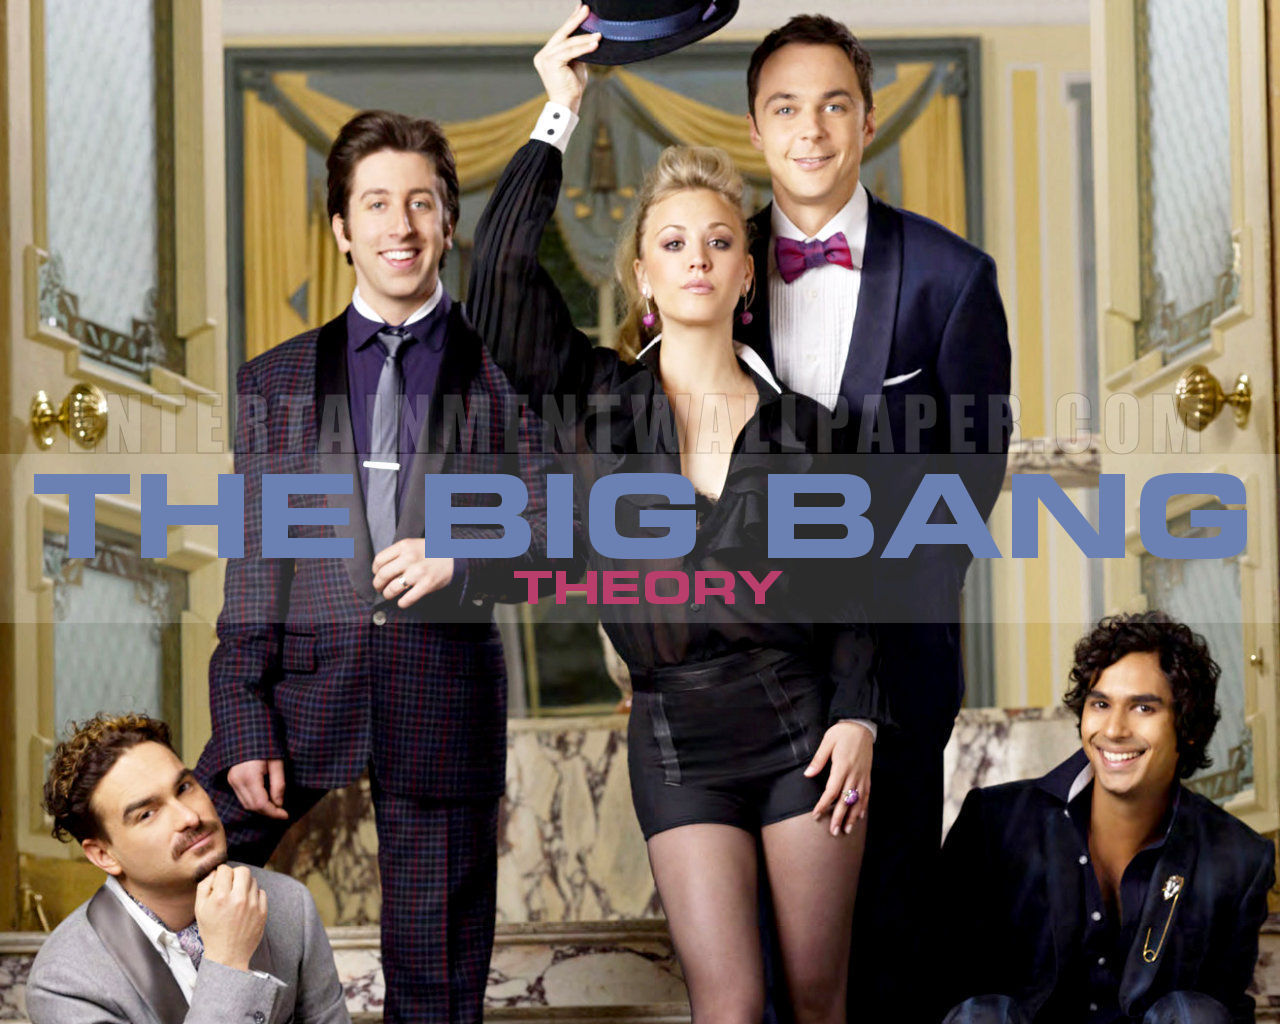 http://3.bp.blogspot.com/_E26Ndy_oKVc/TVBMSgakgqI/AAAAAAAABOQ/oSQg3I4Kp-s/s1600/TBBT-wallpaper-the-big-bang-theory-15234820-1280-1024.jpg